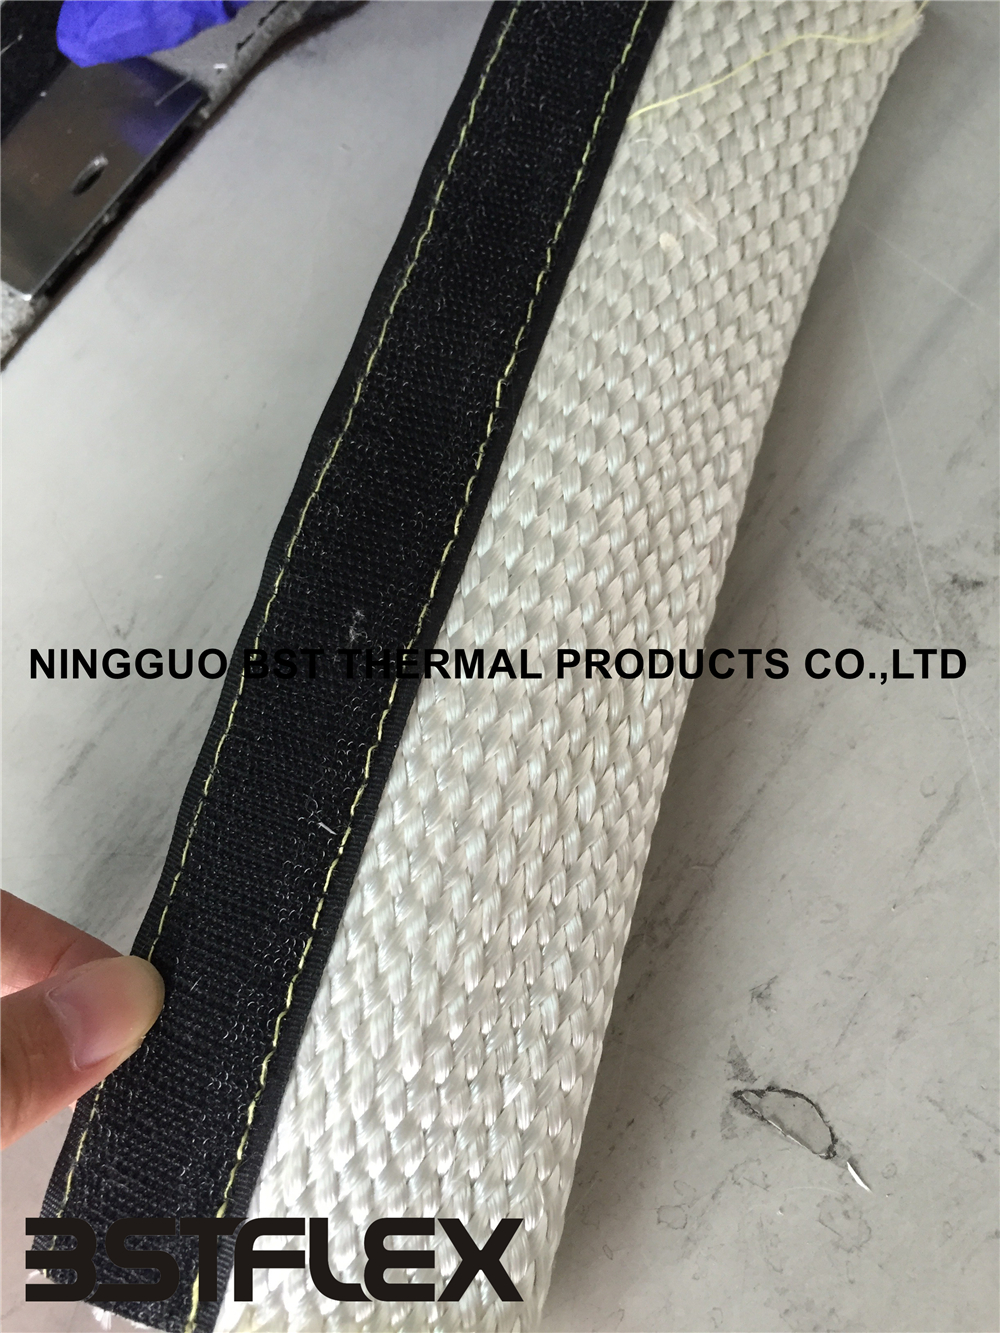 silicone coated fiberglass firesleeve with hoop and loop fastener